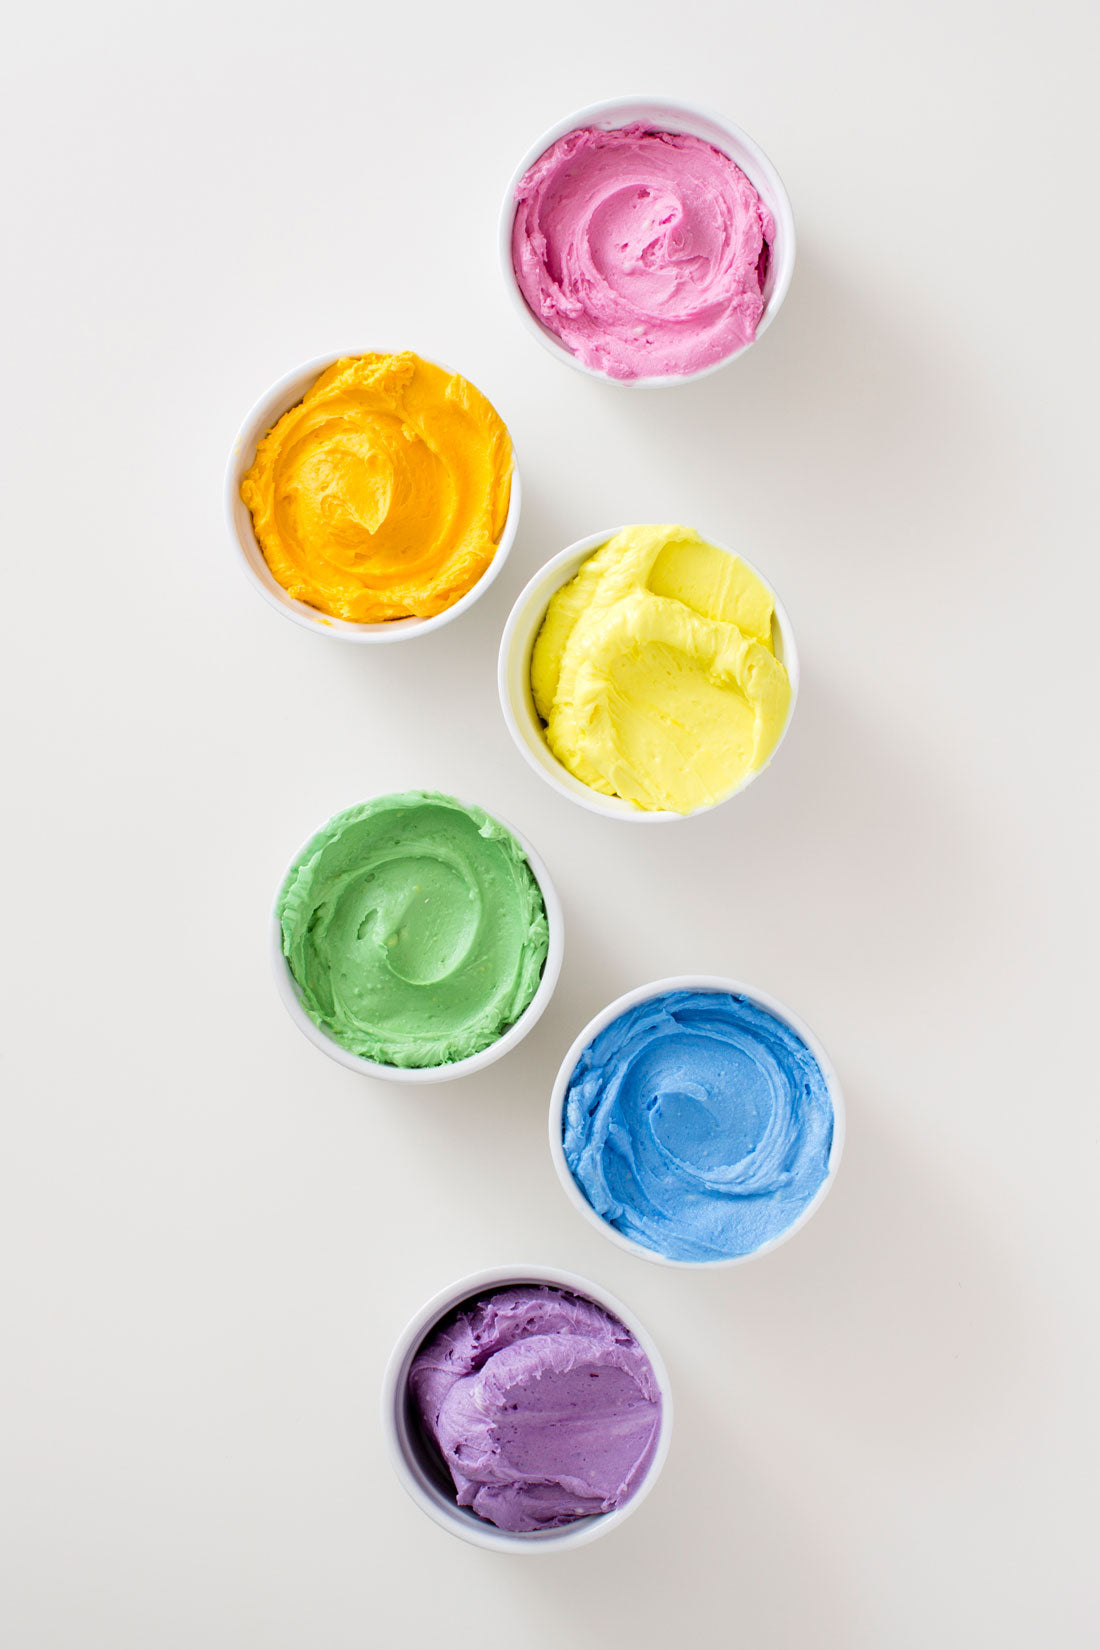 Image of pink, orange, yellow, green, blue, and purple frostings in bowls for Miss Jones Baking Co Naturally Dyed Rainbow Frosted Layer Cake